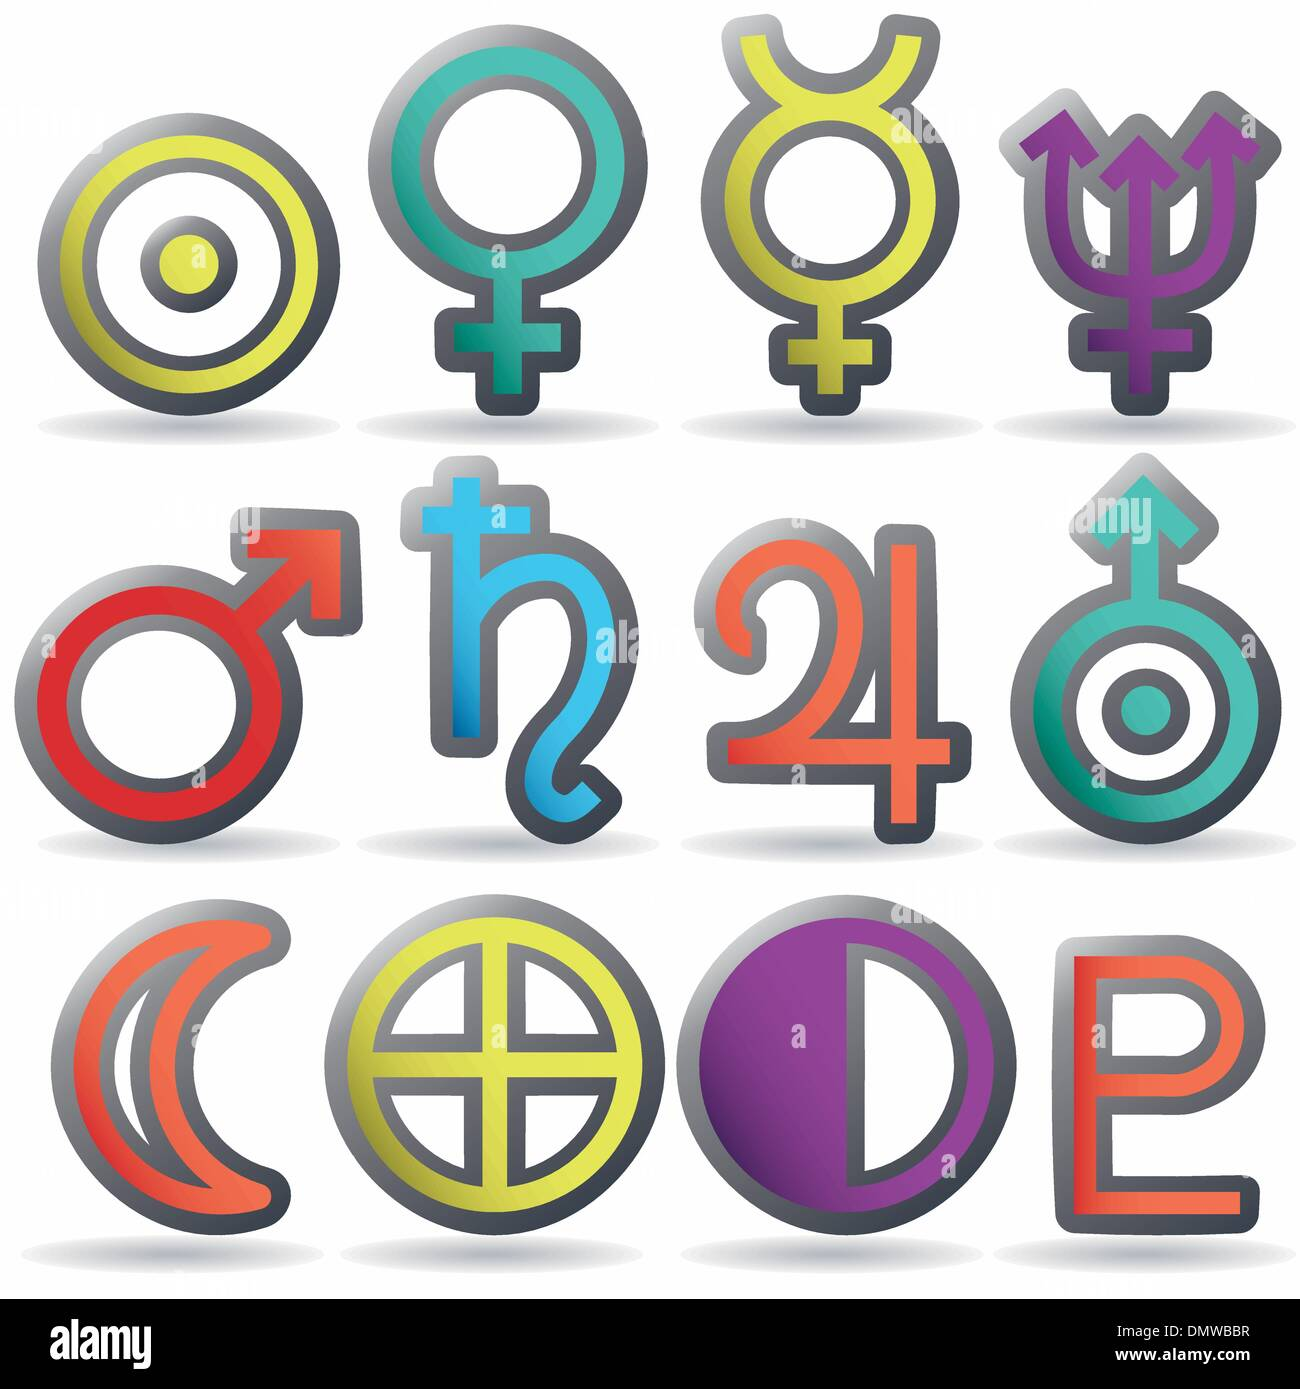 Zodiac And Astrology Symbols Of The Planets Stock Vector Image Art Alamy